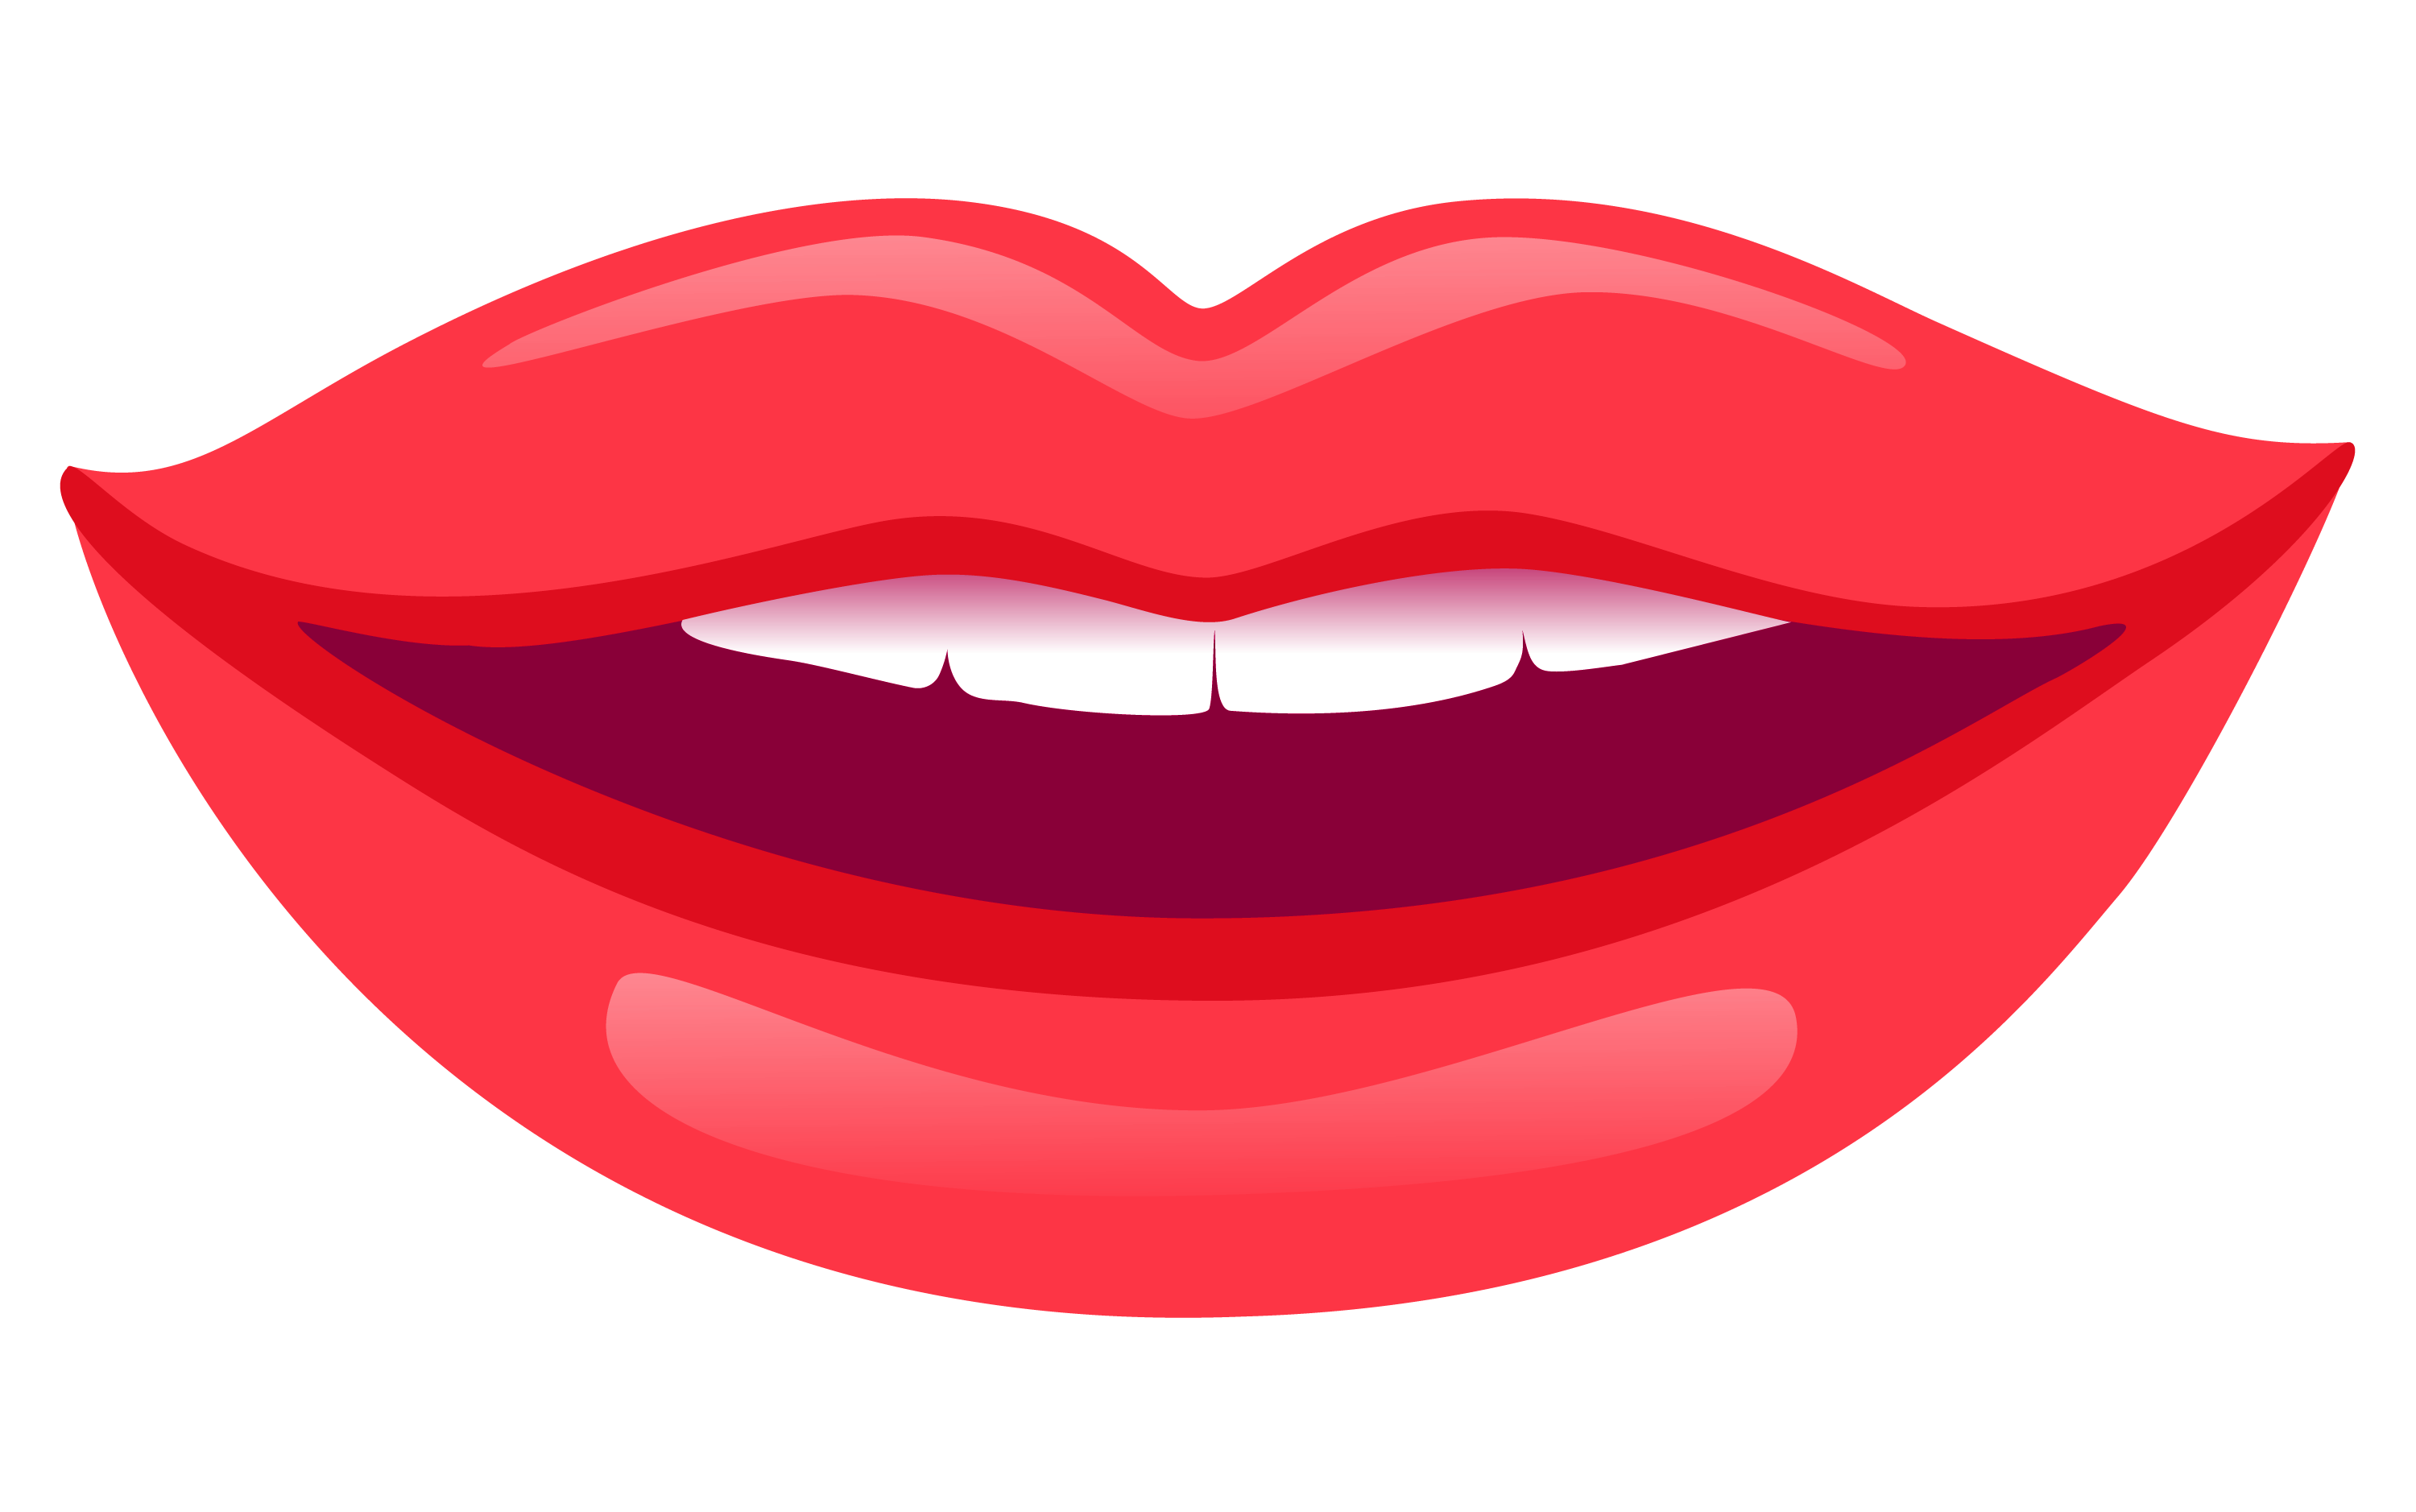 Smiling Lips PNG HD